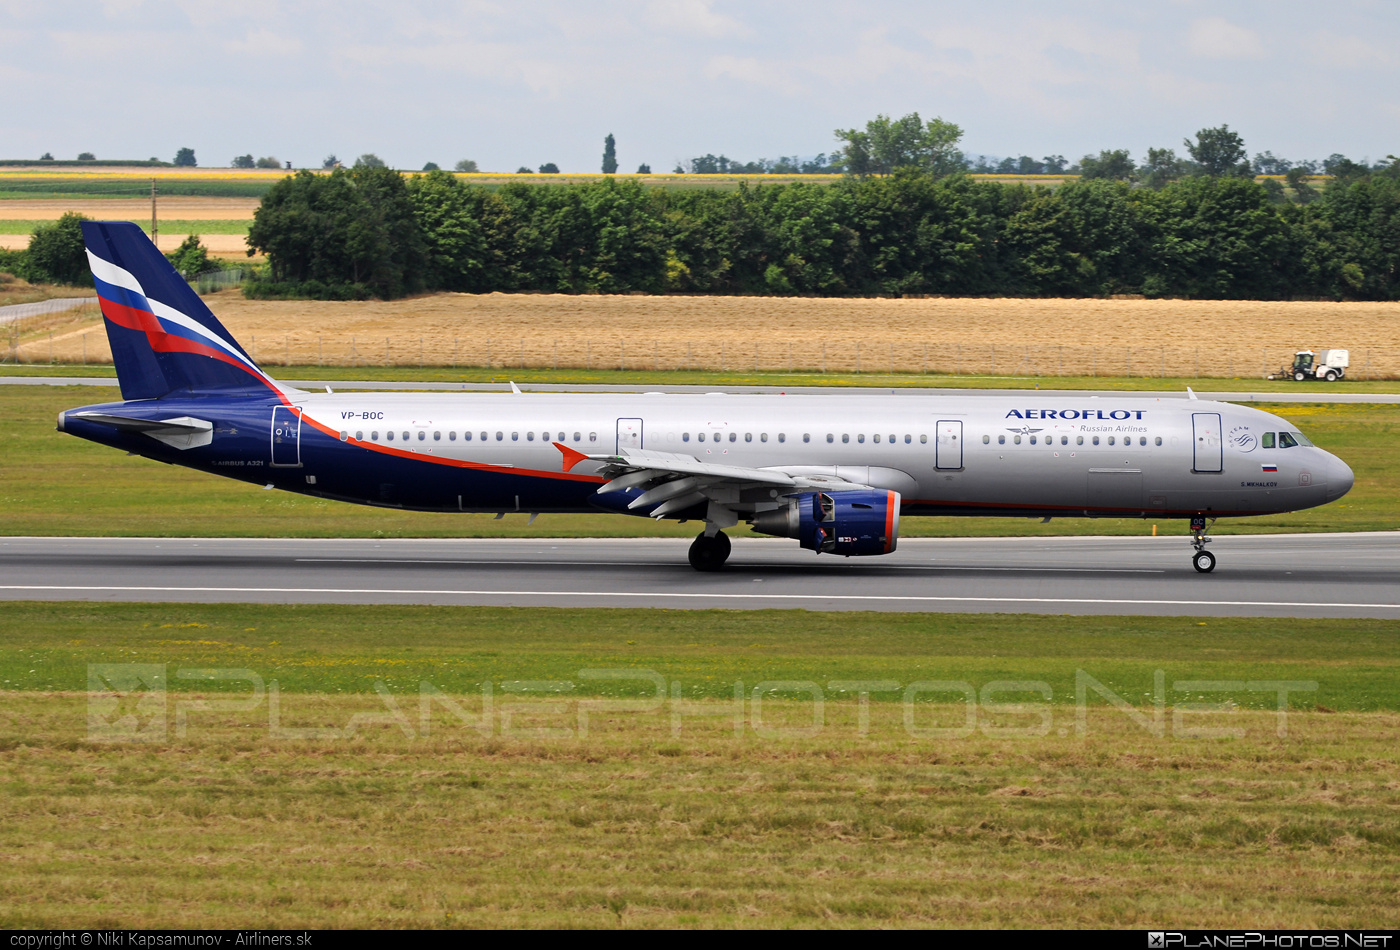 Airbus A321-211 - VP-BOC operated by Aeroflot #a320family #a321 #aeroflot #airbus #airbus321